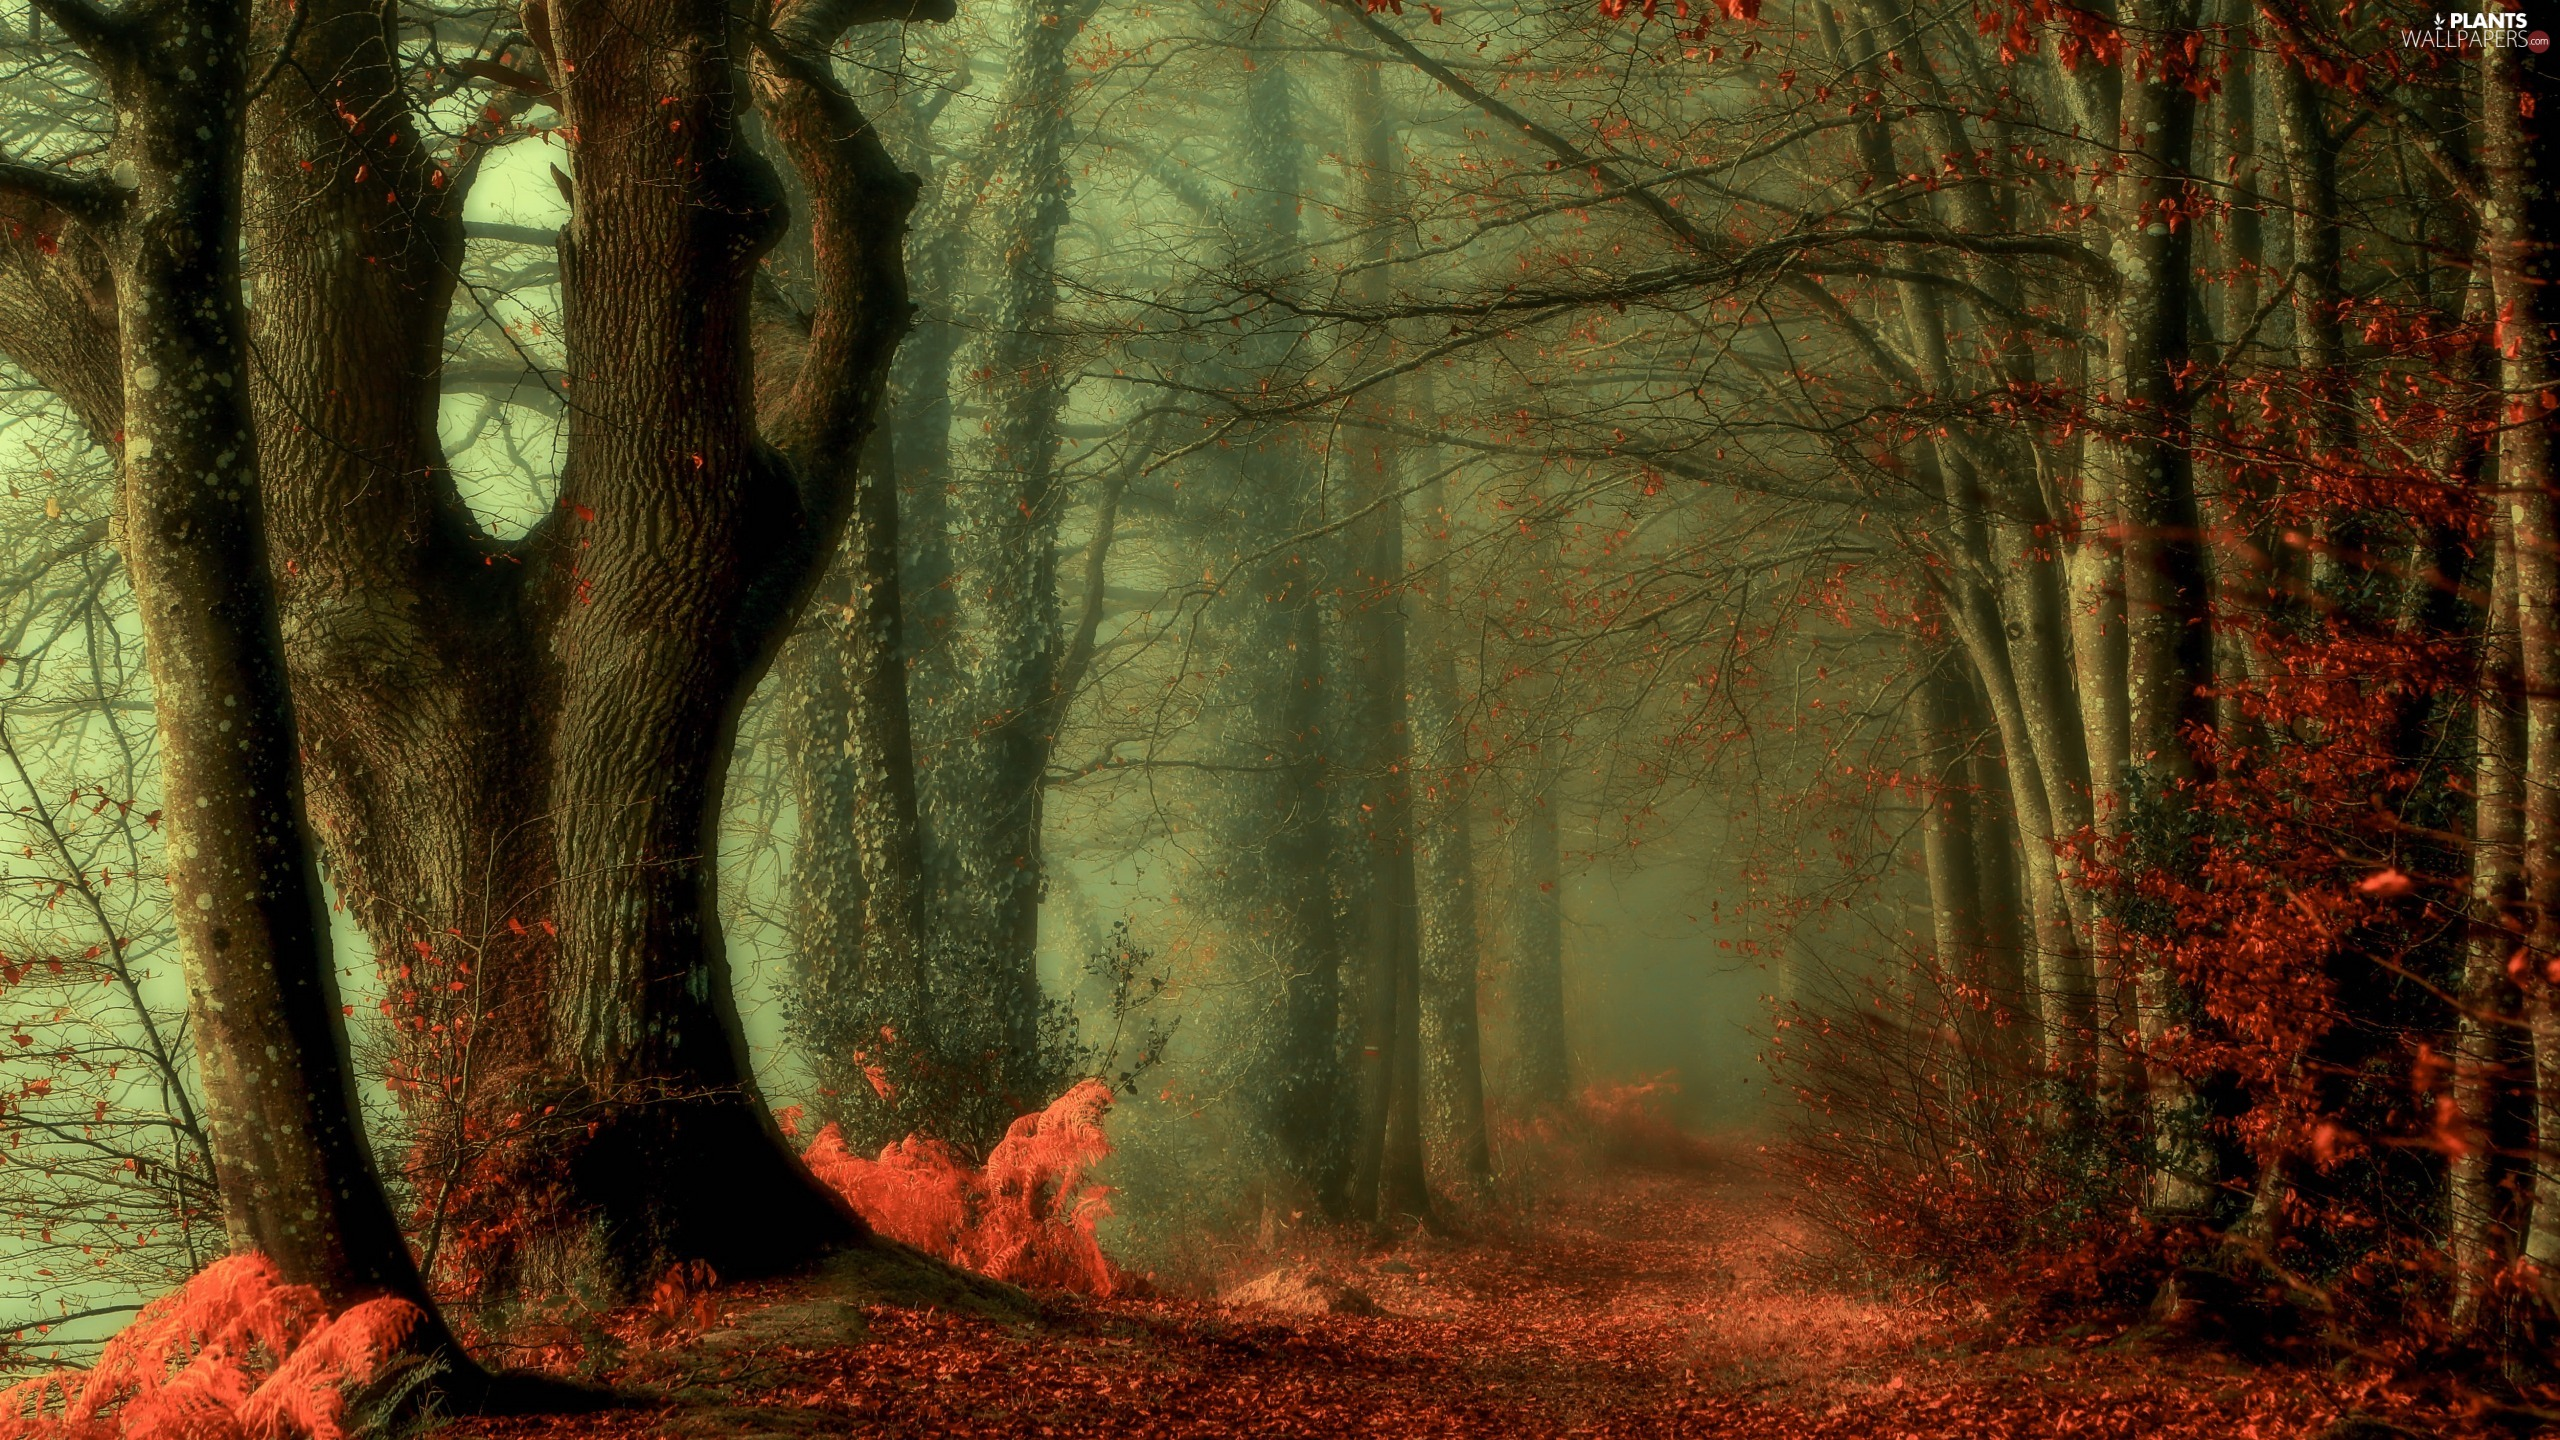 Fog, viewes, trees, autumn, Leaf, forest, Way